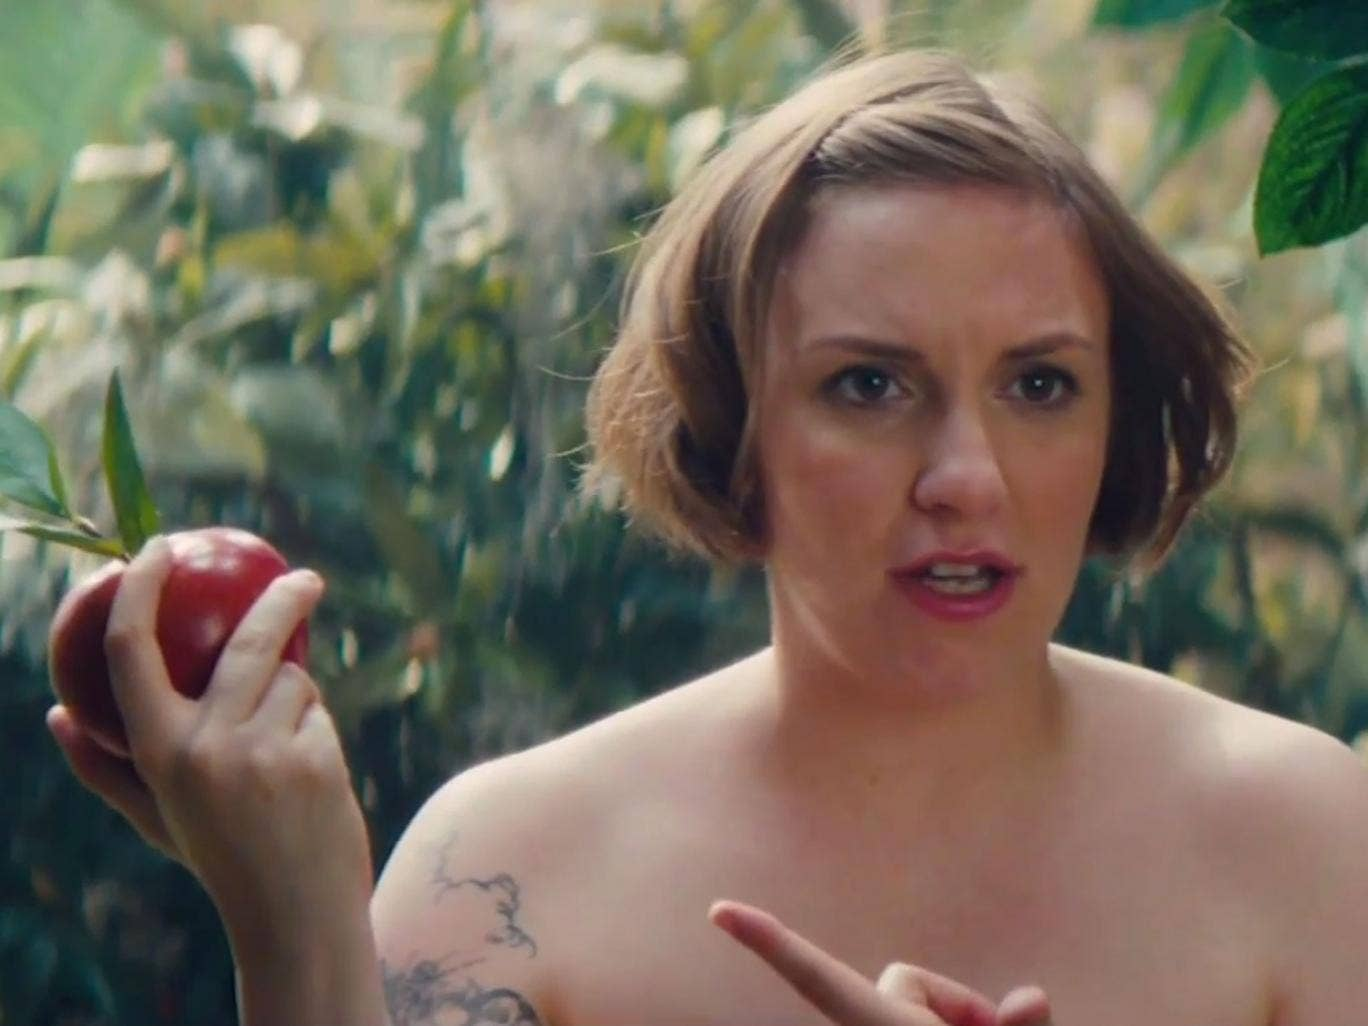 Lena Dunham stripped to her birthday suit to play Eve in a Girls spoof on Saturday Night Live